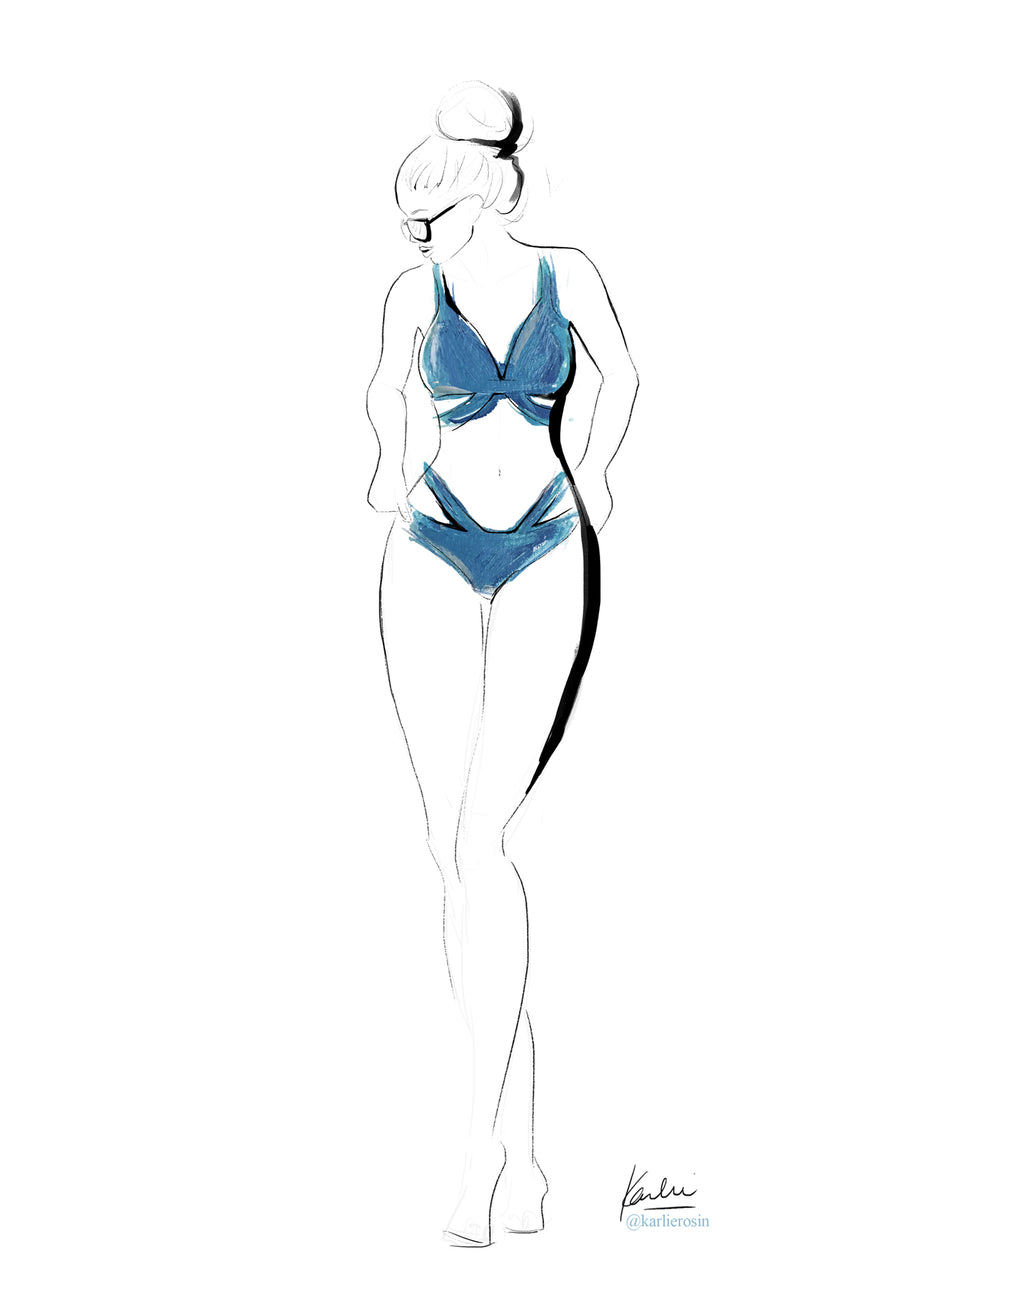 Elegant Linear Illustration | Aqua Bikini Summer Fashion Illustration | 8x10, 11x14